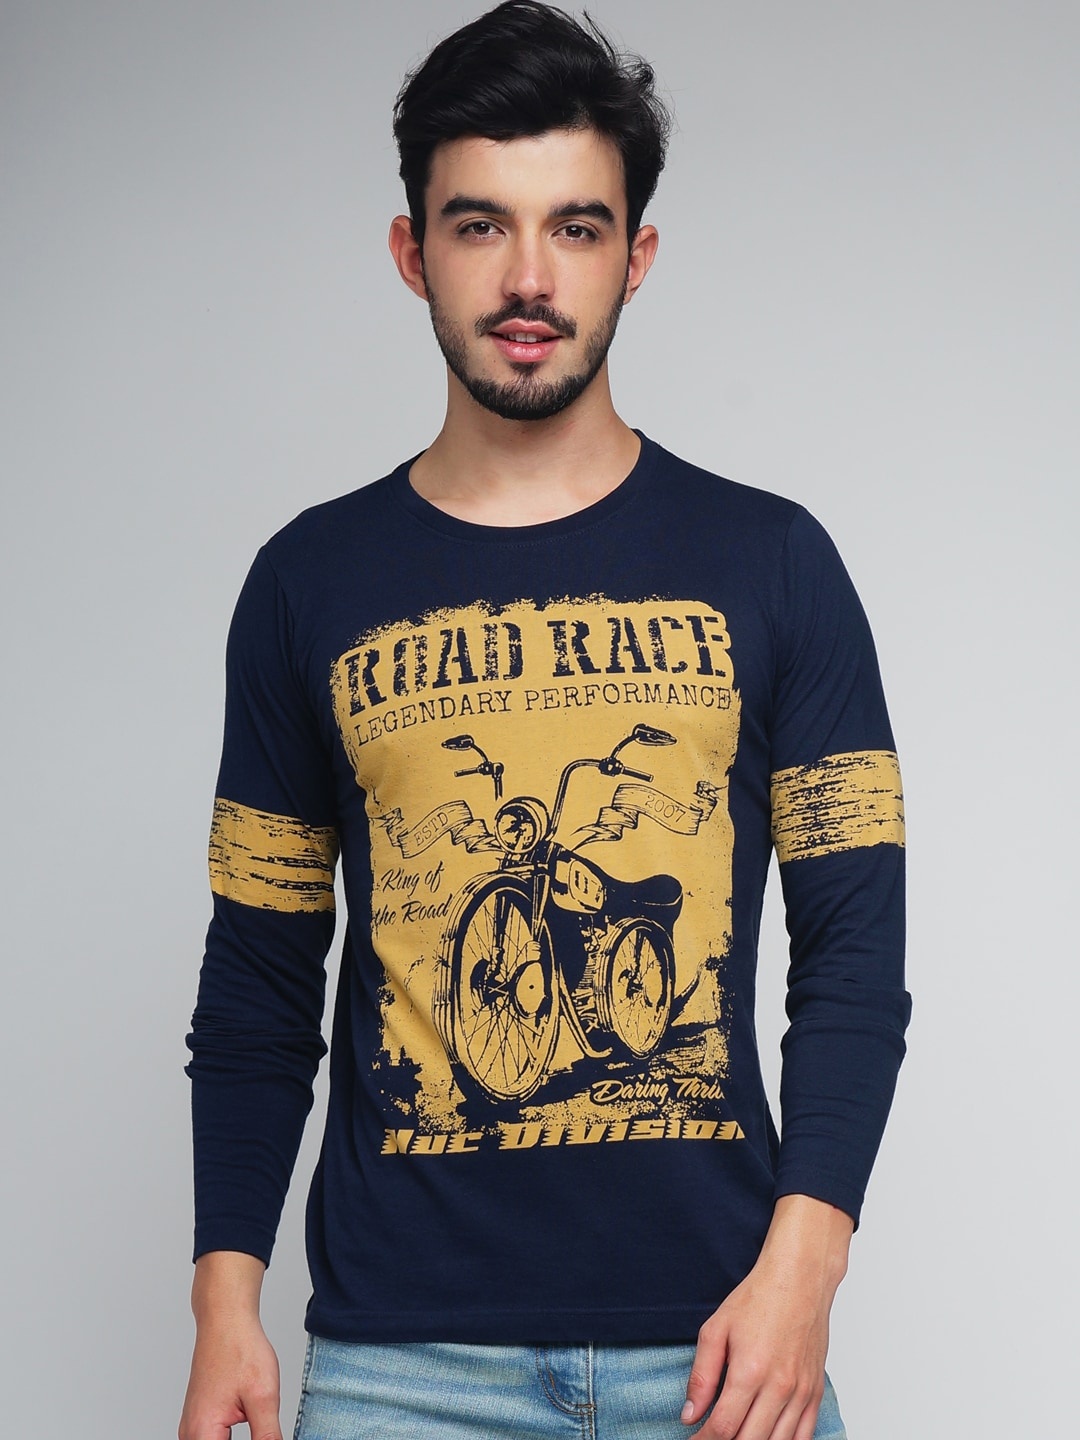 T-Shirts - Buy T-Shirts for Men & Women Online in India - Myntra